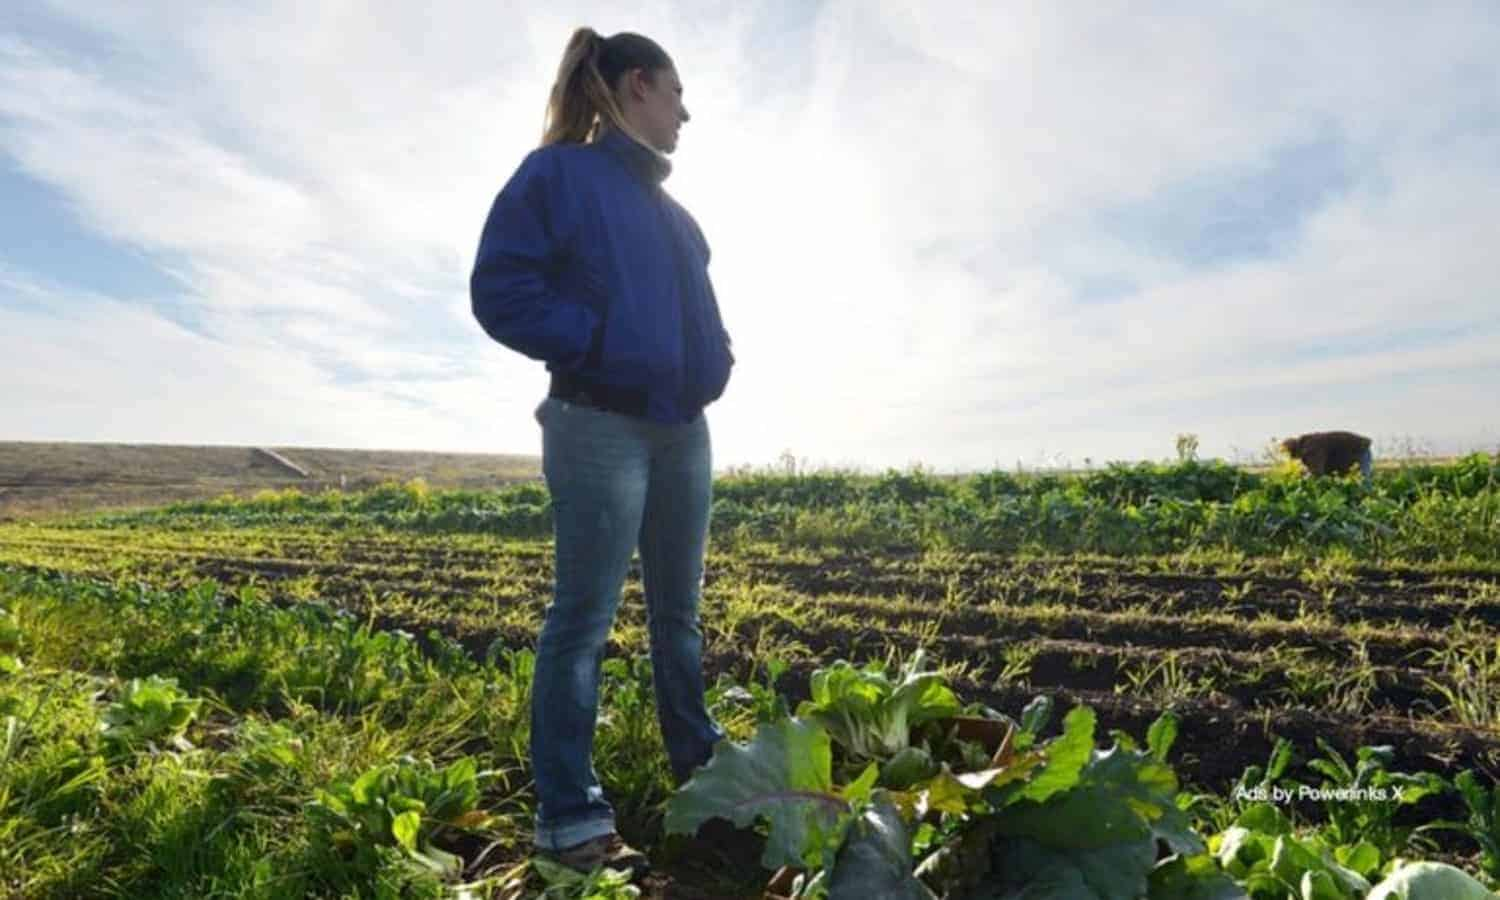 First Generation Farmers demonstrates passion for supporting the next generation of farmers with its new farmer training program.